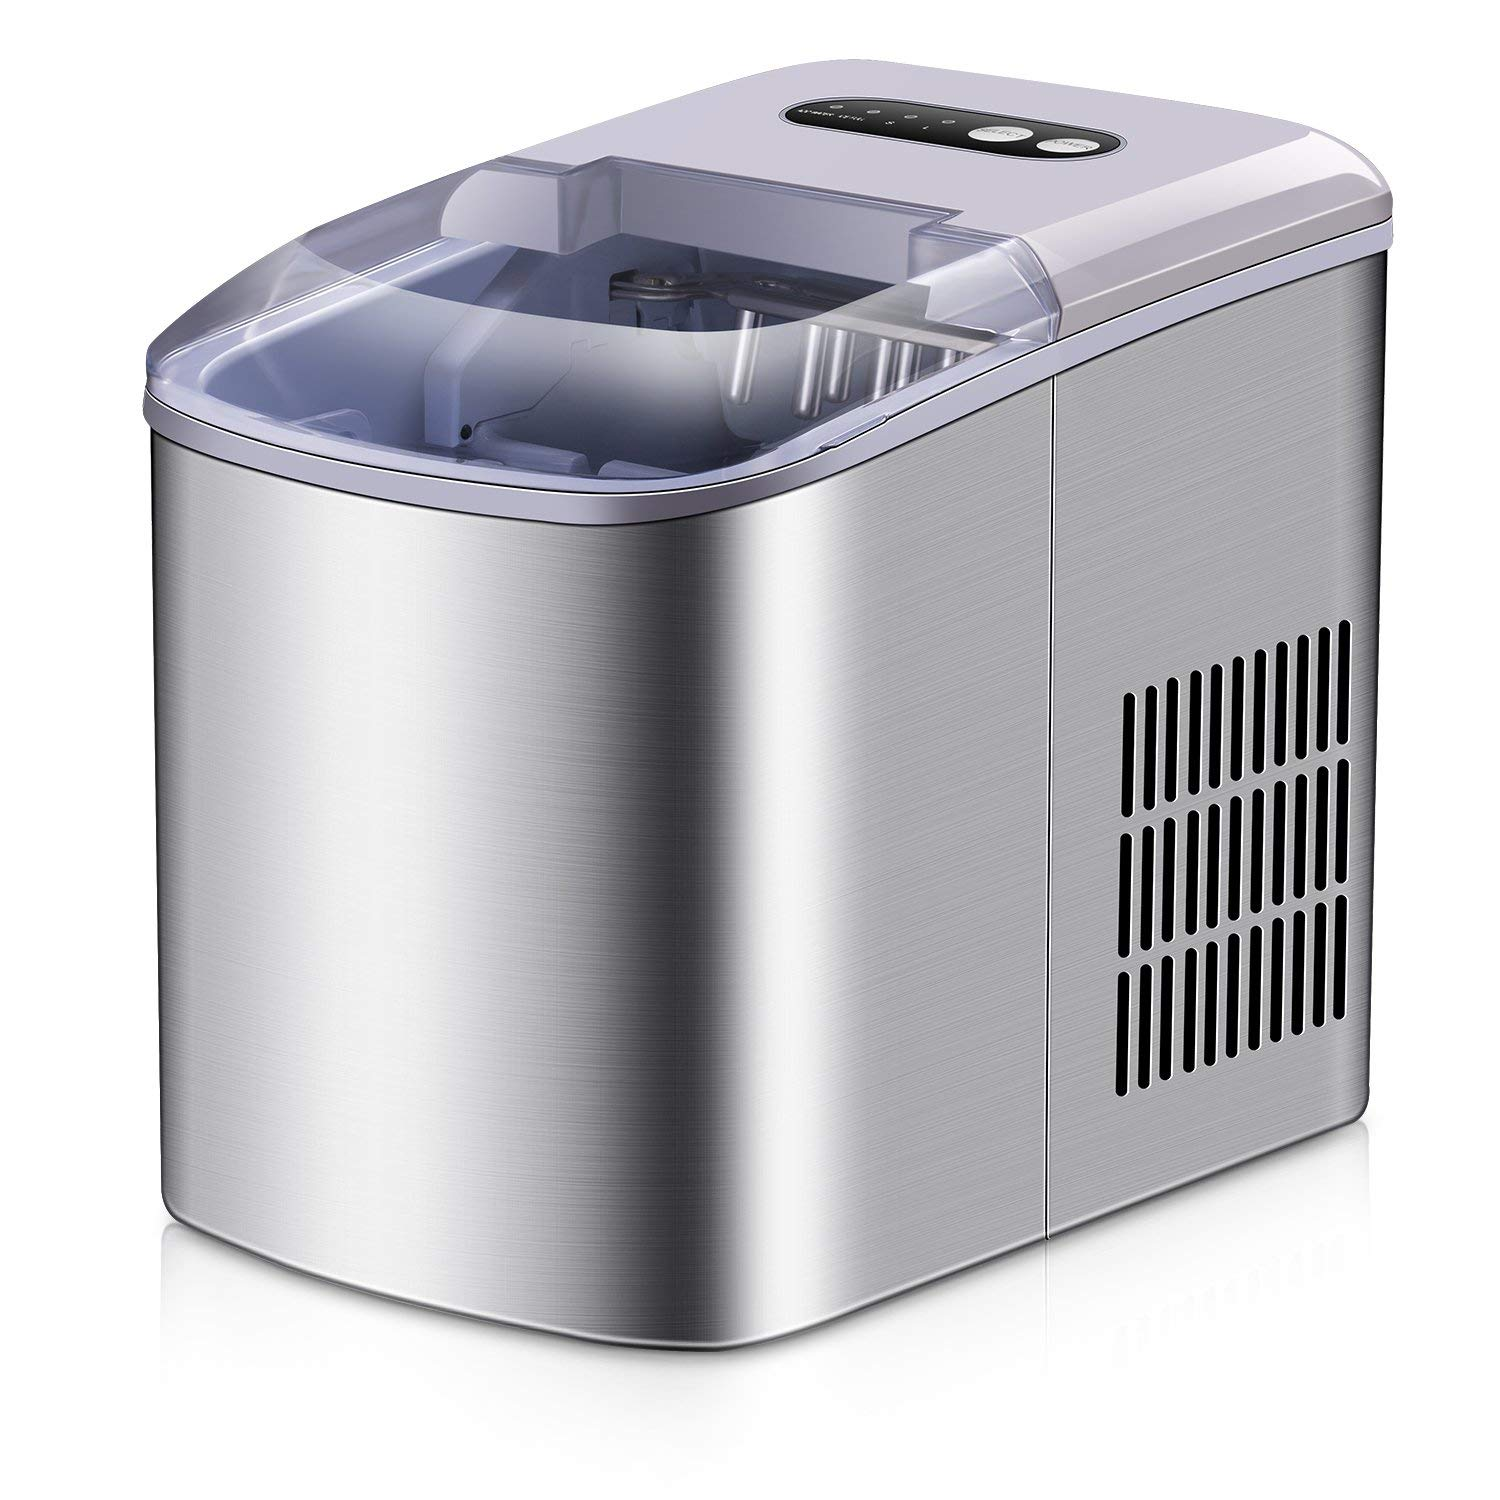 Buy Portable Ice Maker - 2018 New Style Stainless Steel ...